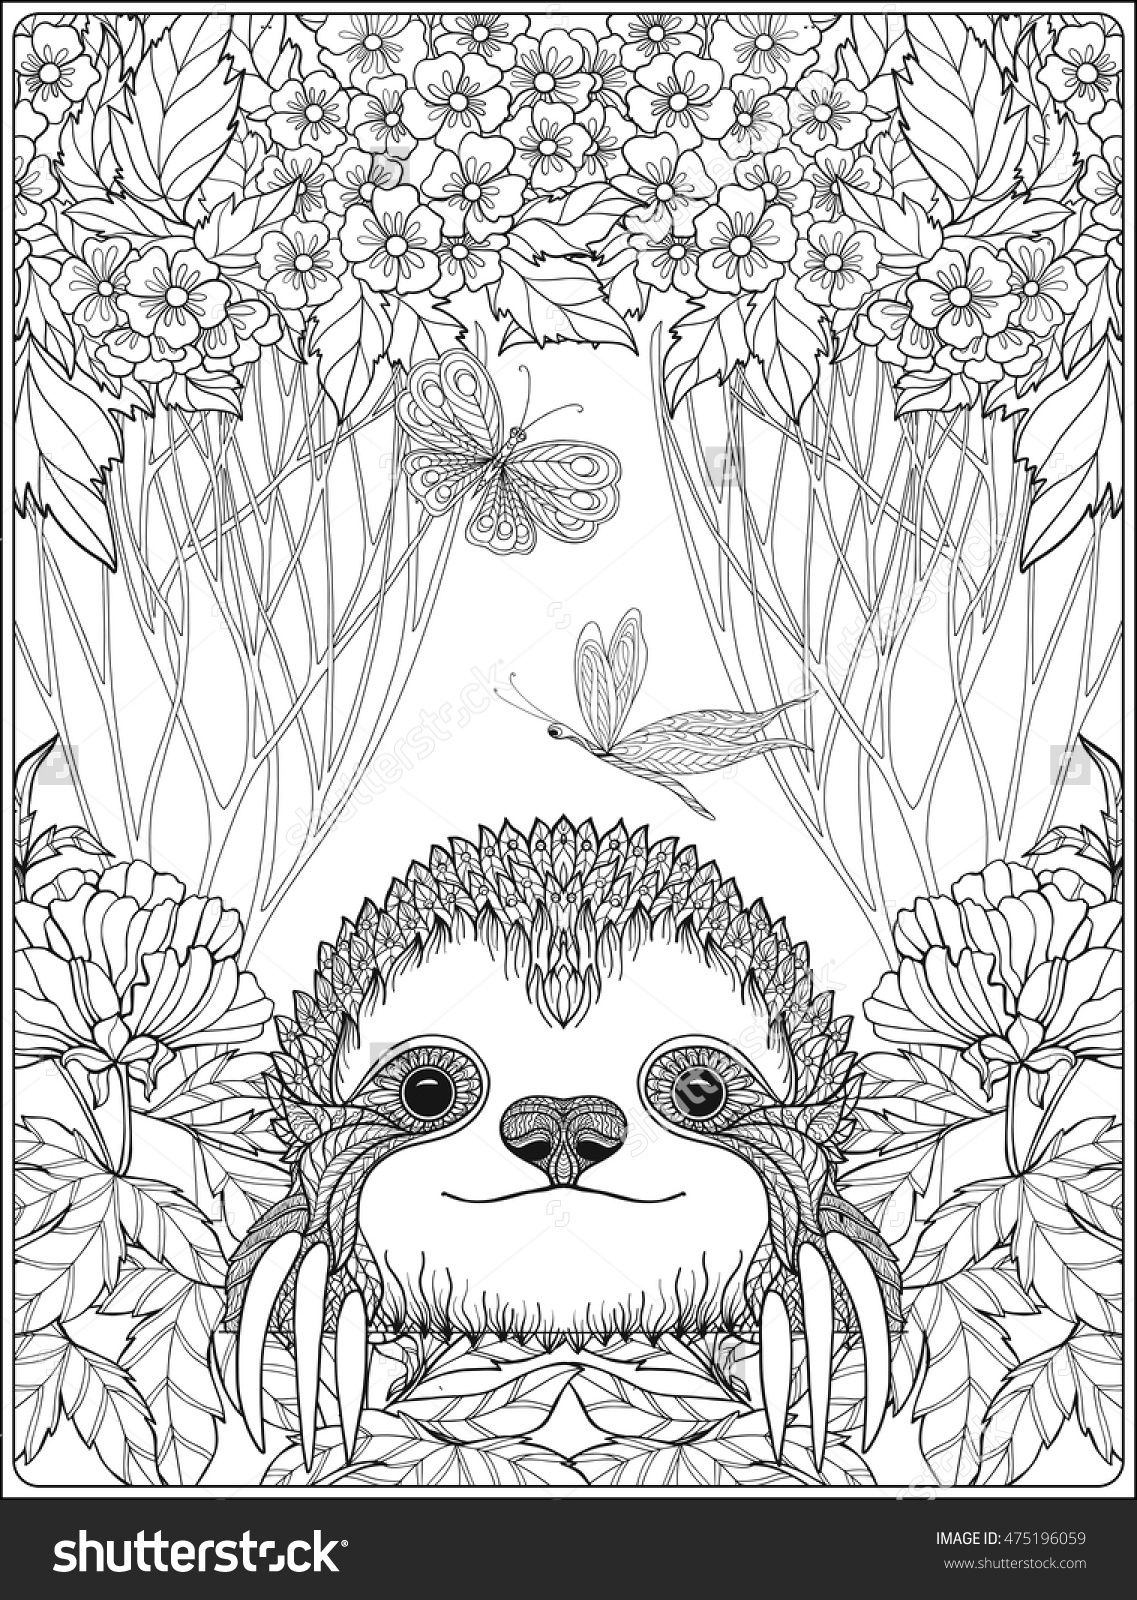 Free coloring pages of peacock feathers coloring everyday printable - Cute Sloth In Forest Coloring Page For Adults Shutterstock 475196059